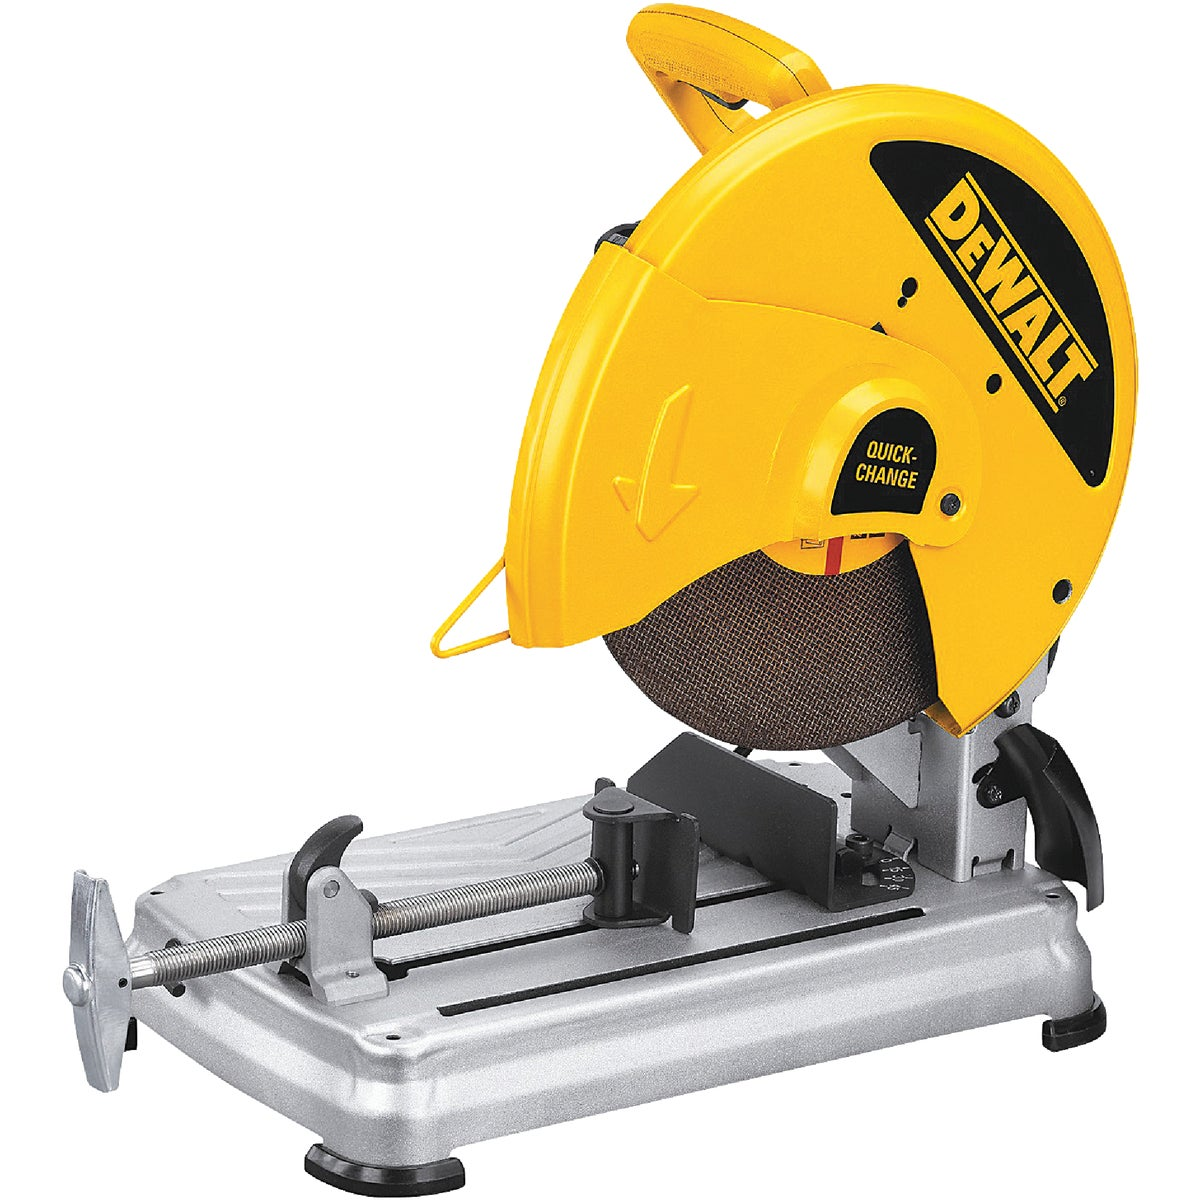 "14"" CHOP SAW - D28715 by DeWalt"